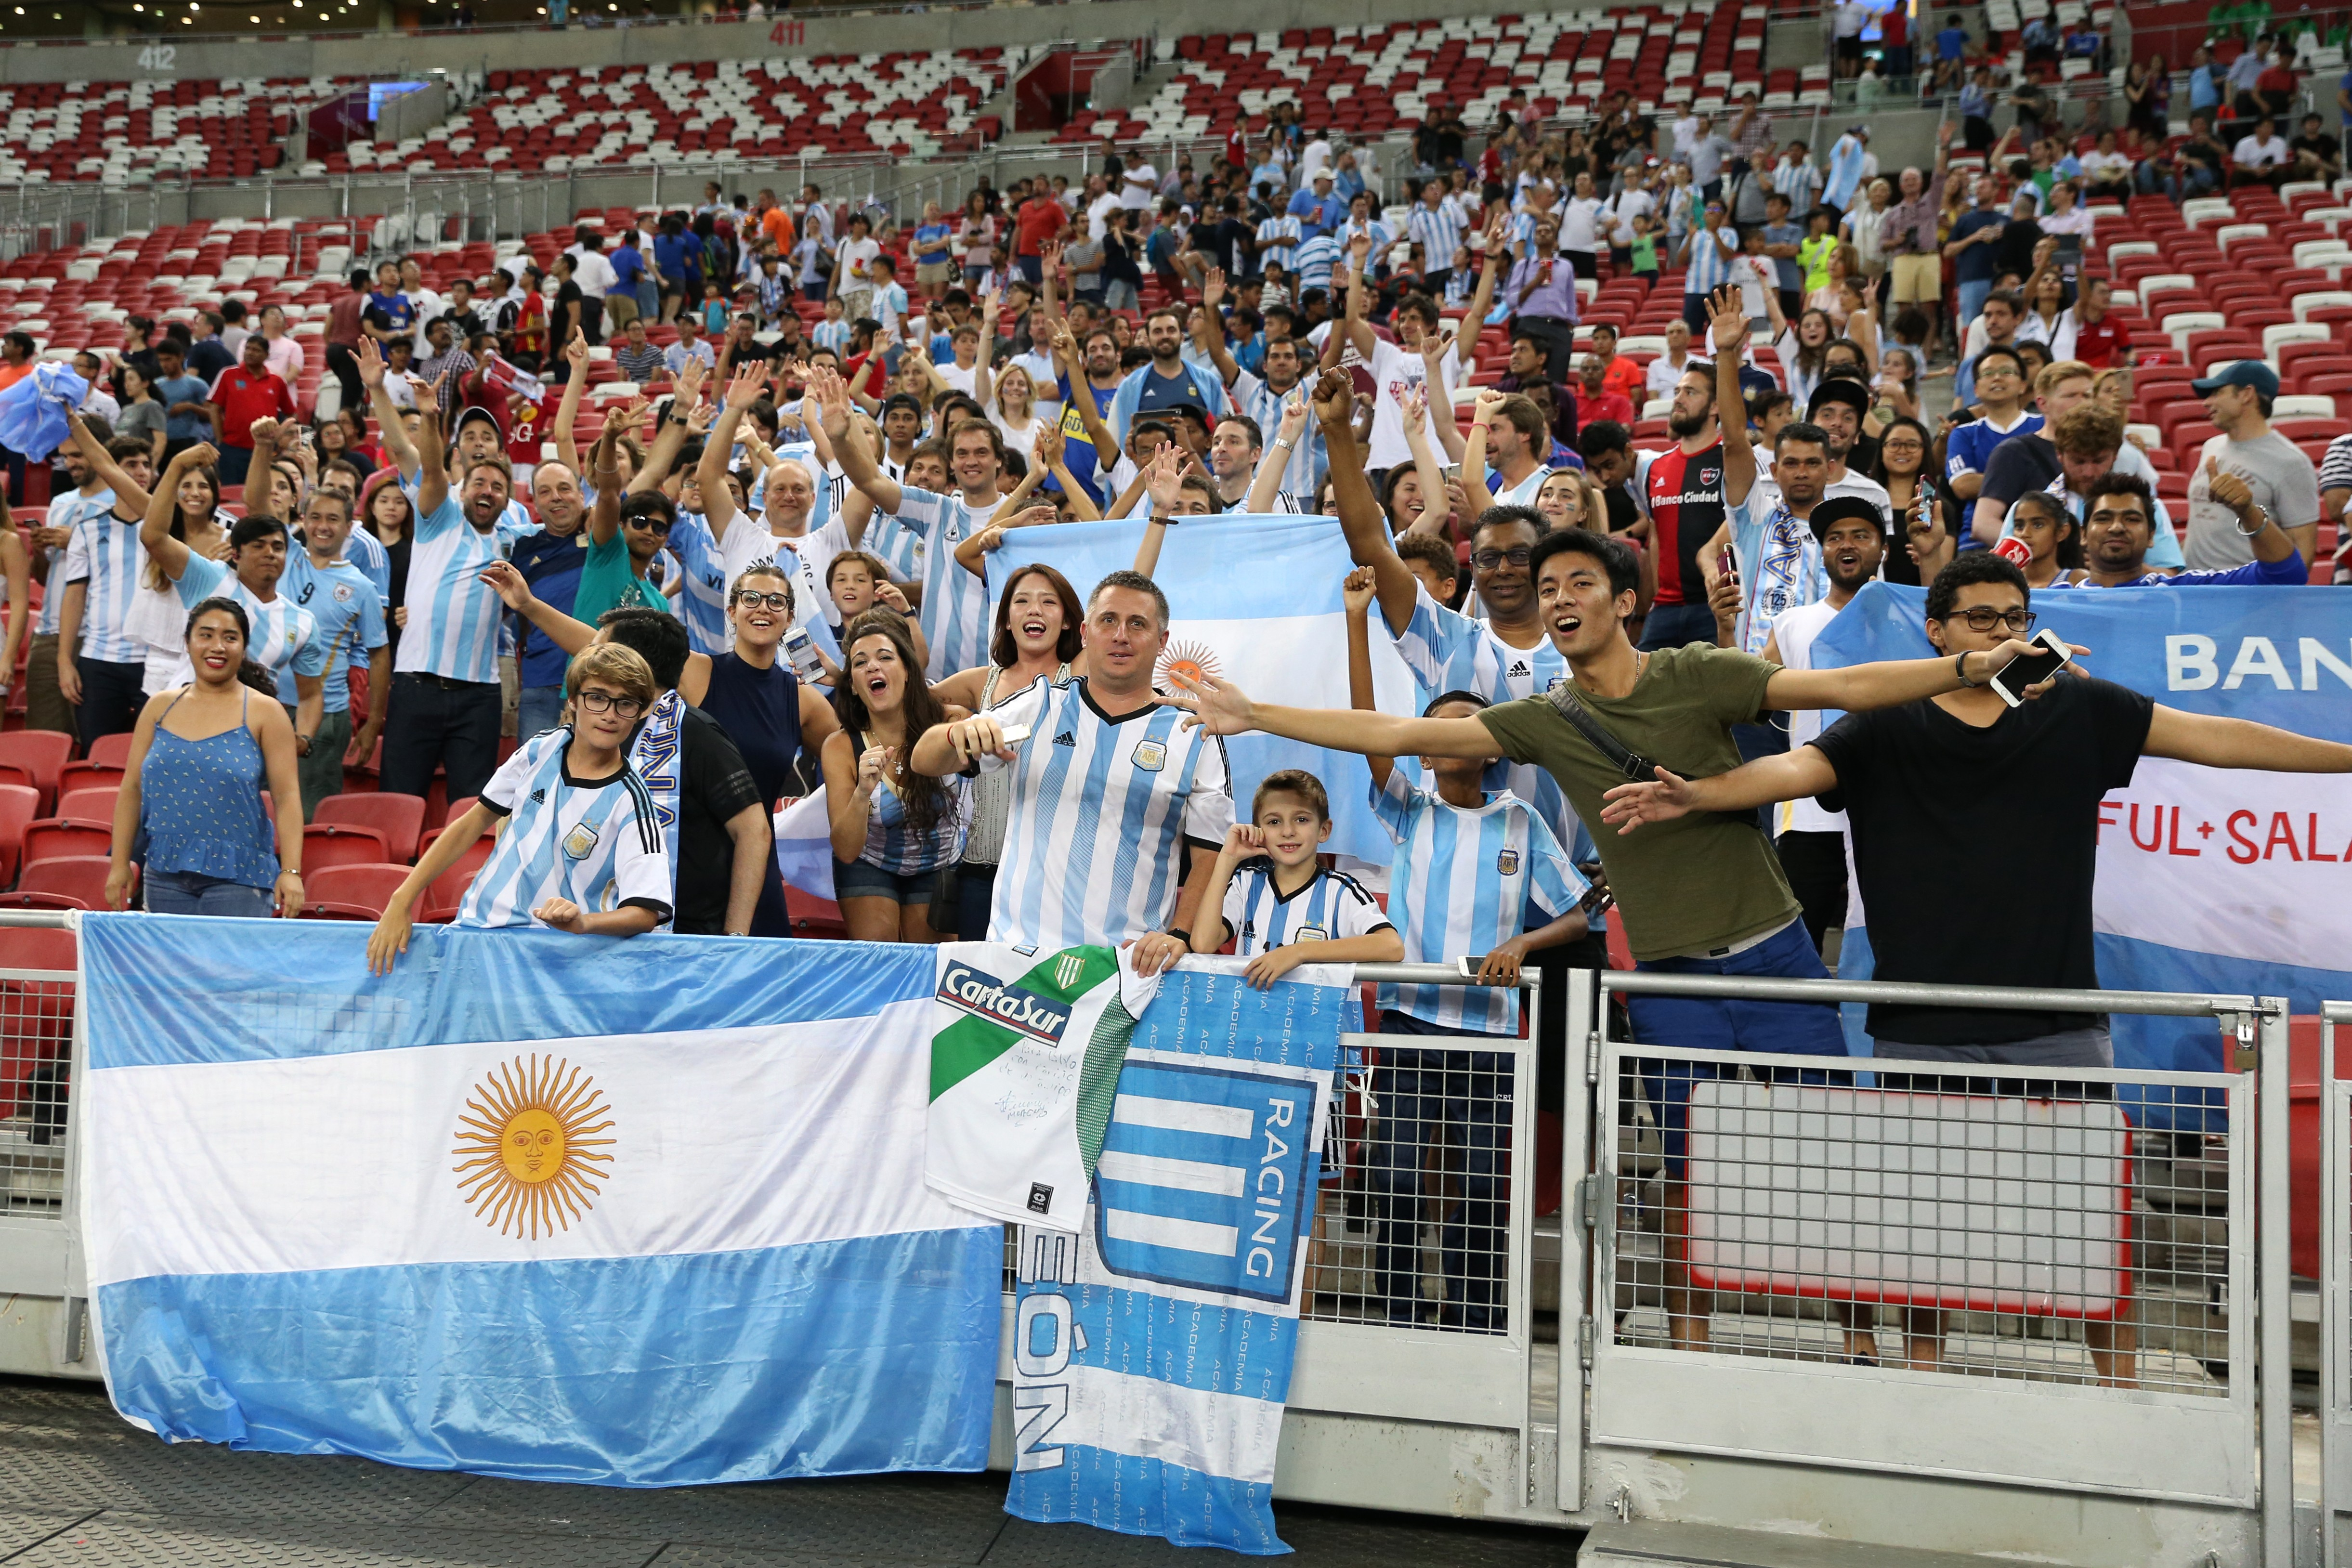 SINGAPORE, SINGAPORE - JUNE 13: Argentina fans celebrate after the international friendly match between Argentina and Singapore at National Stadium on June 13, 2017 in Singapore. (Photo by Lionel Ng/Getty Images)